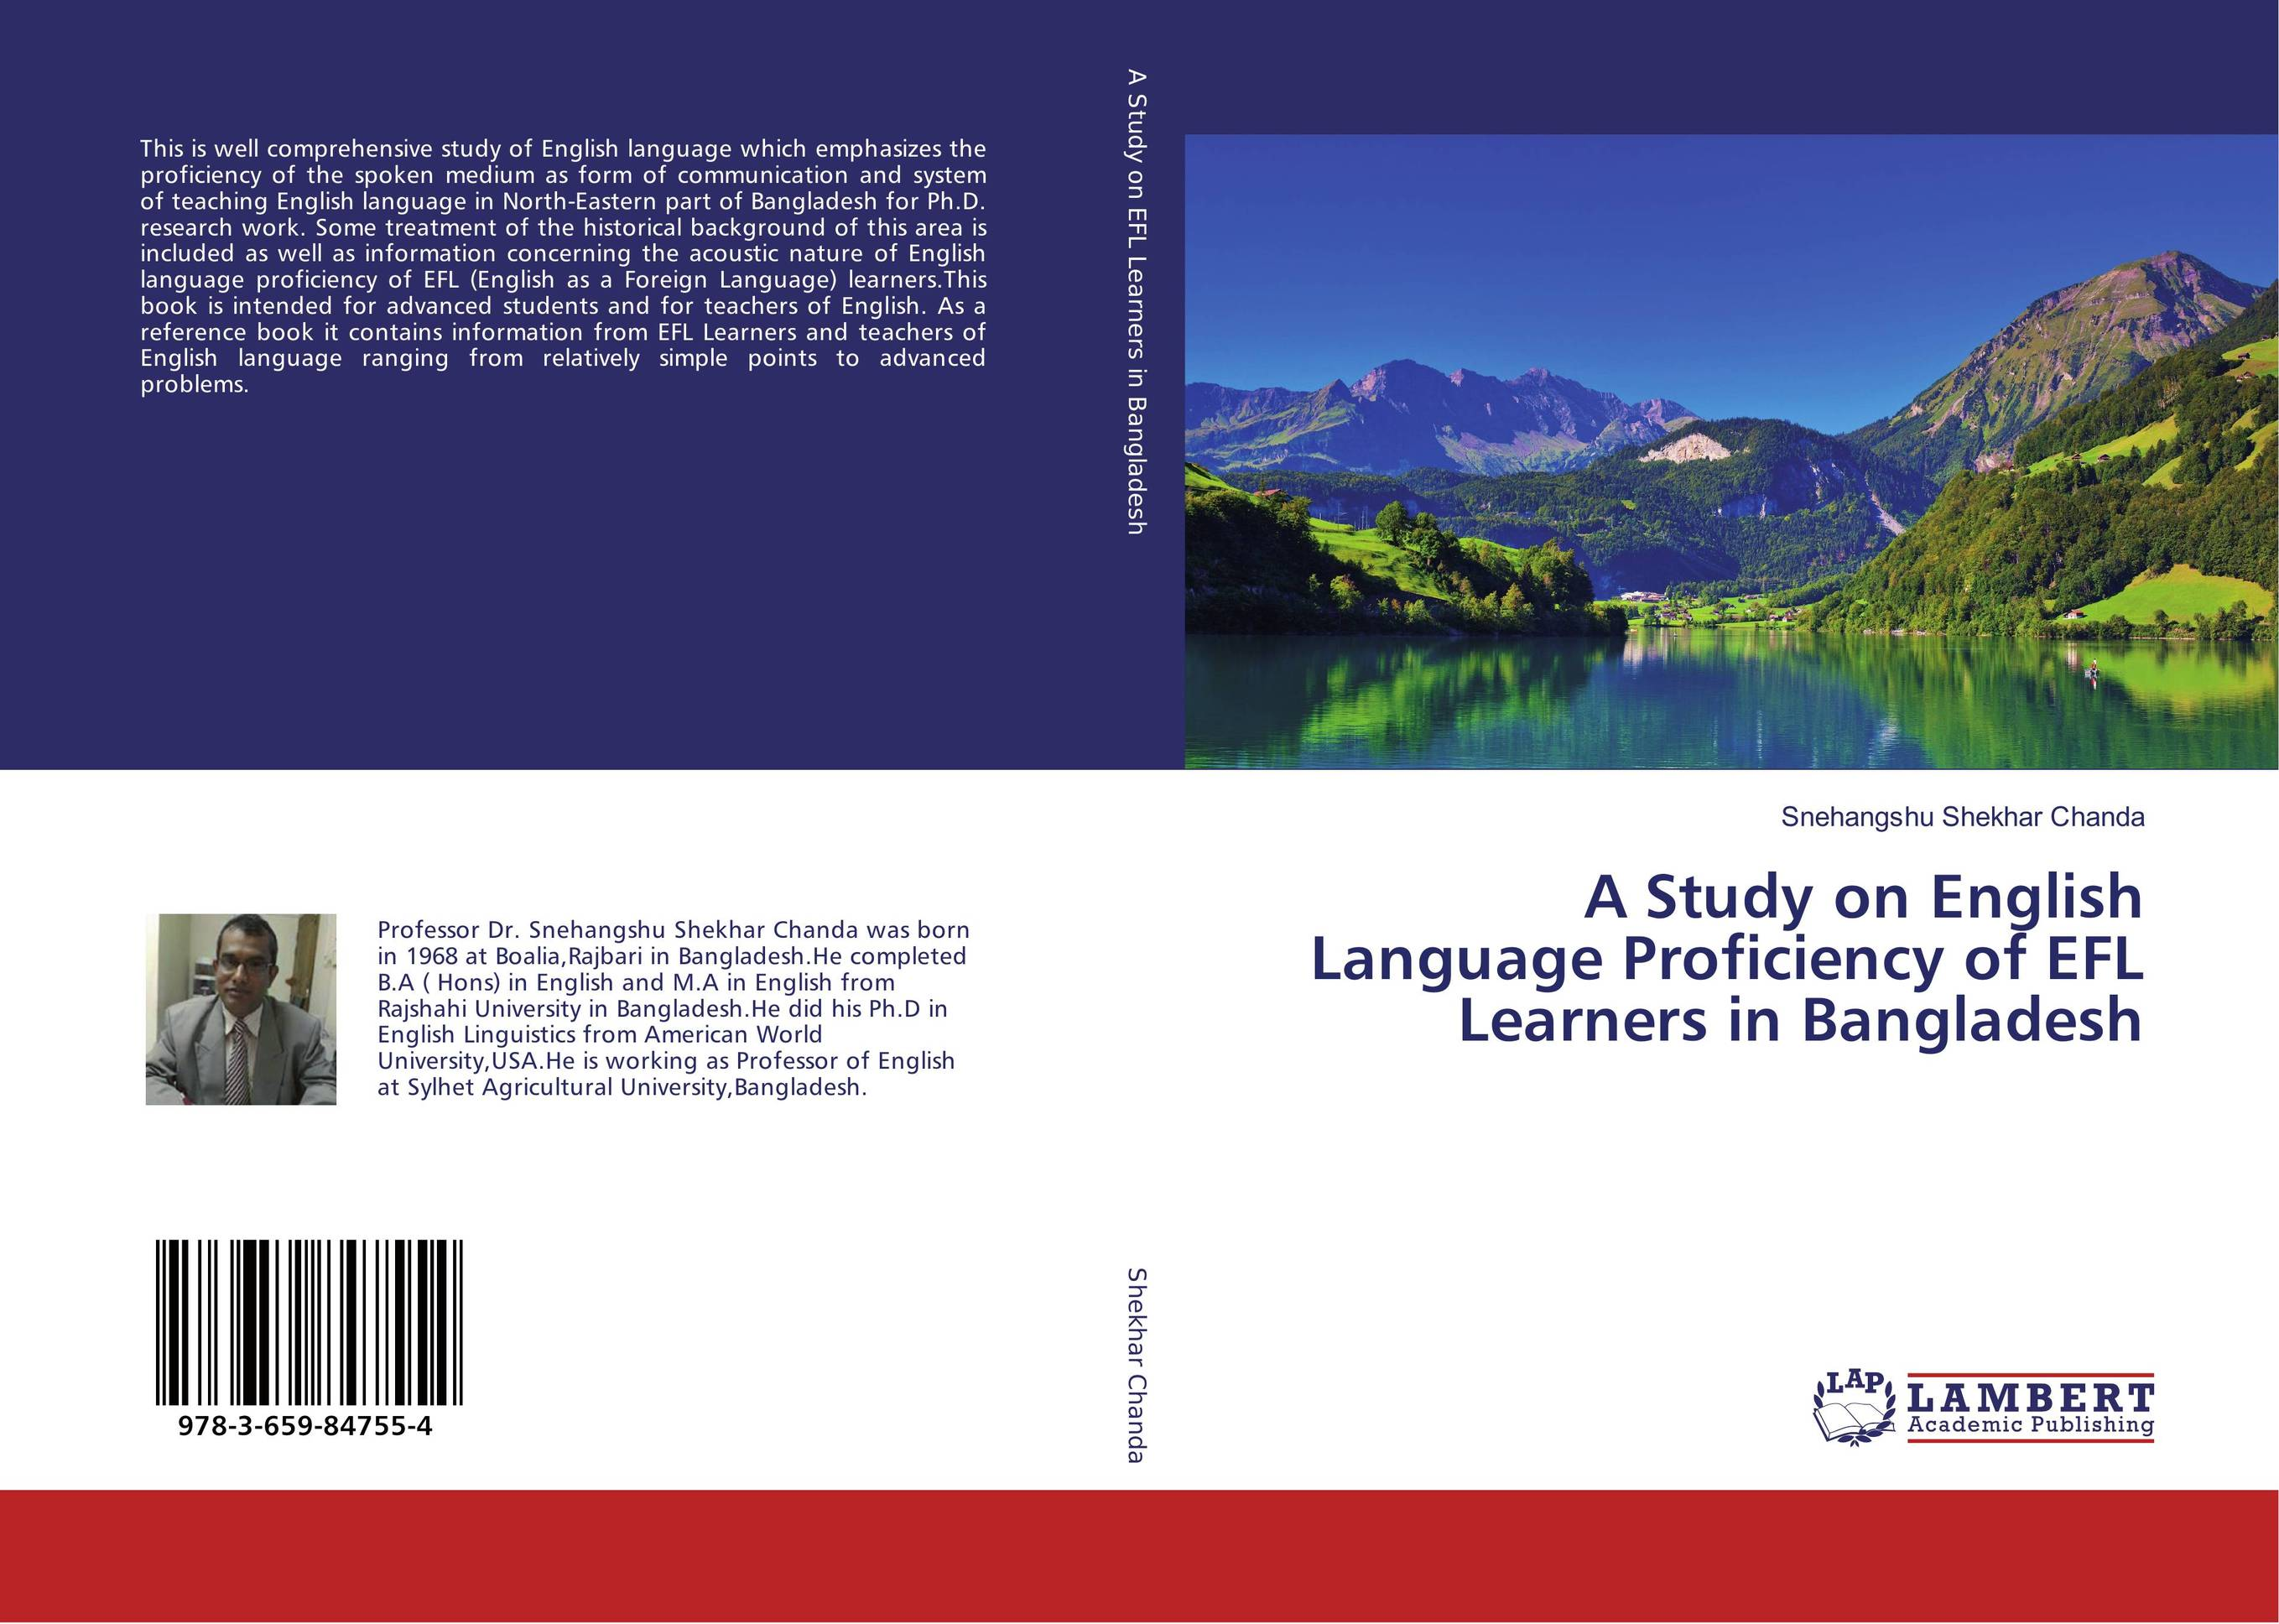 A Study on English Language Proficiency of EFL Learners in Bangladesh attitudes to bilingualism among japanese learners of english